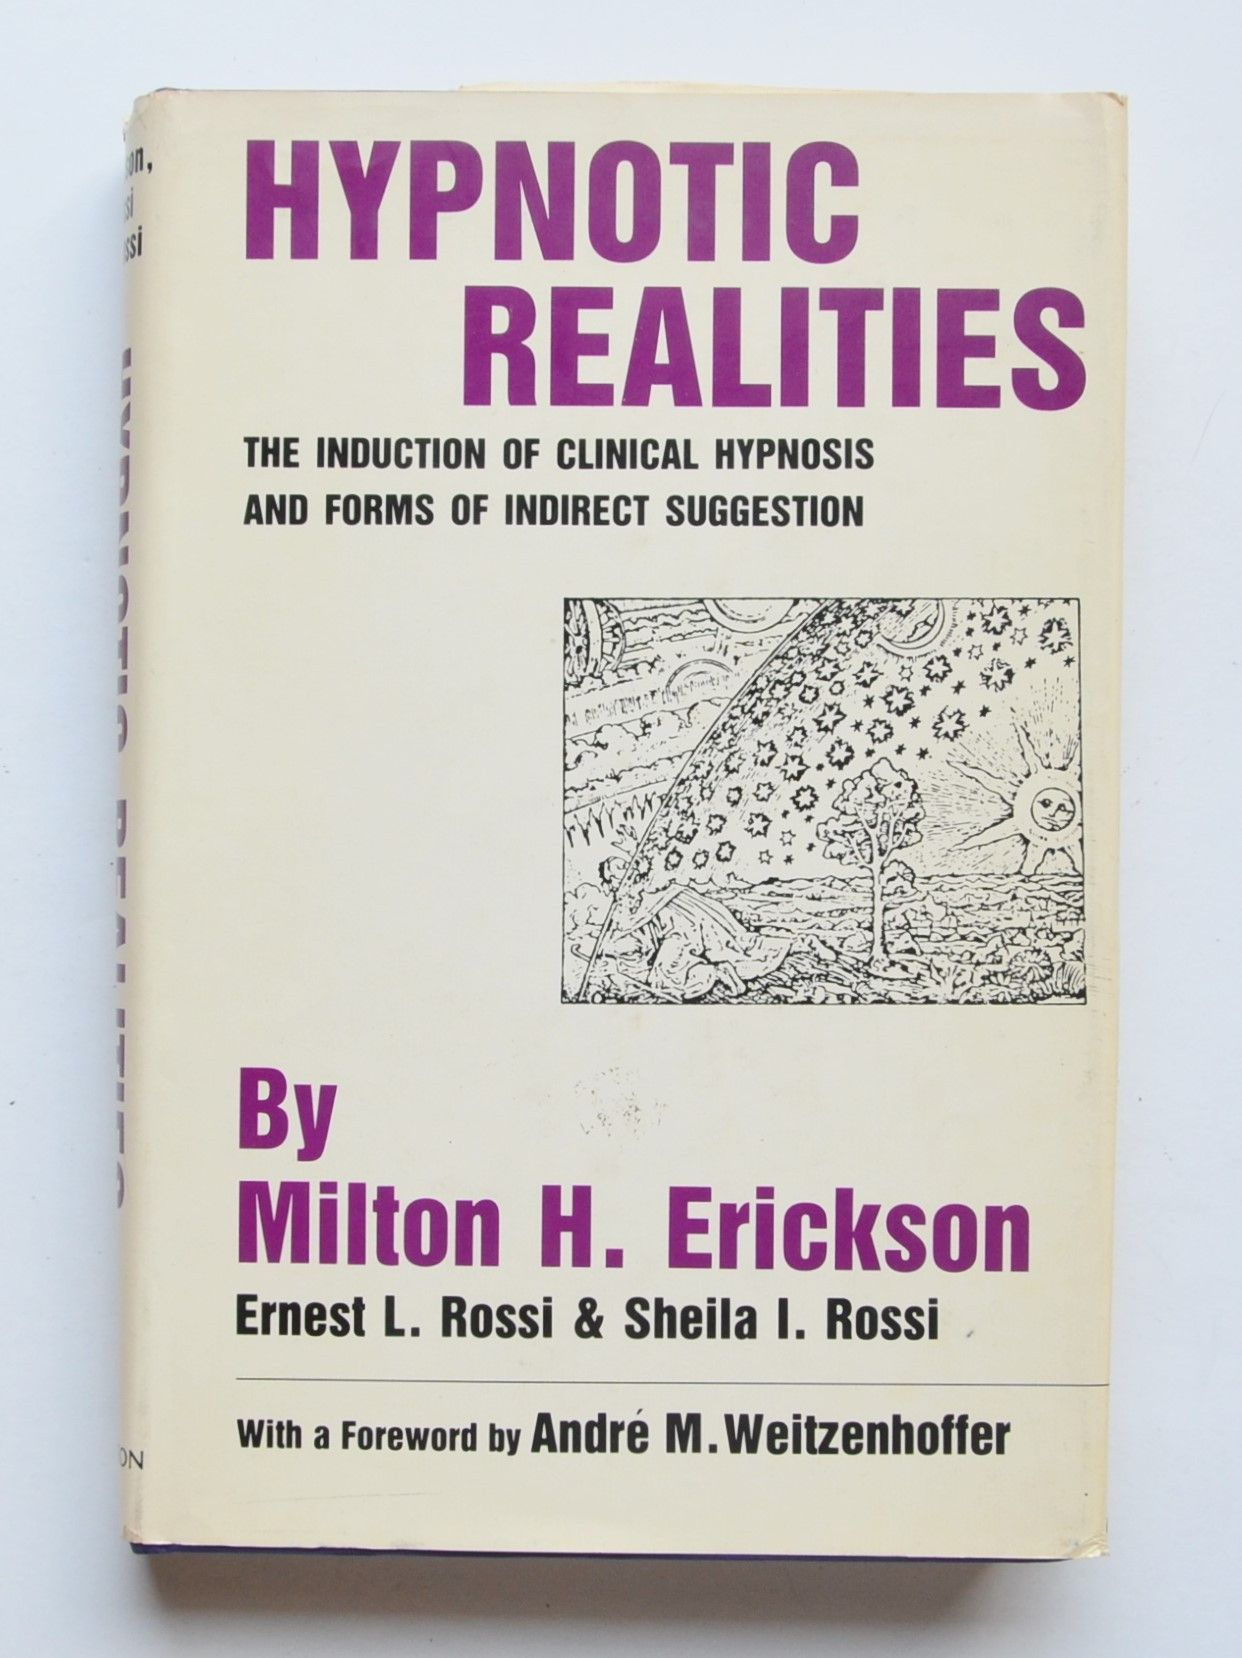 hypnotic realities the induction of clinical hypnosis and forms of indirect suggestion